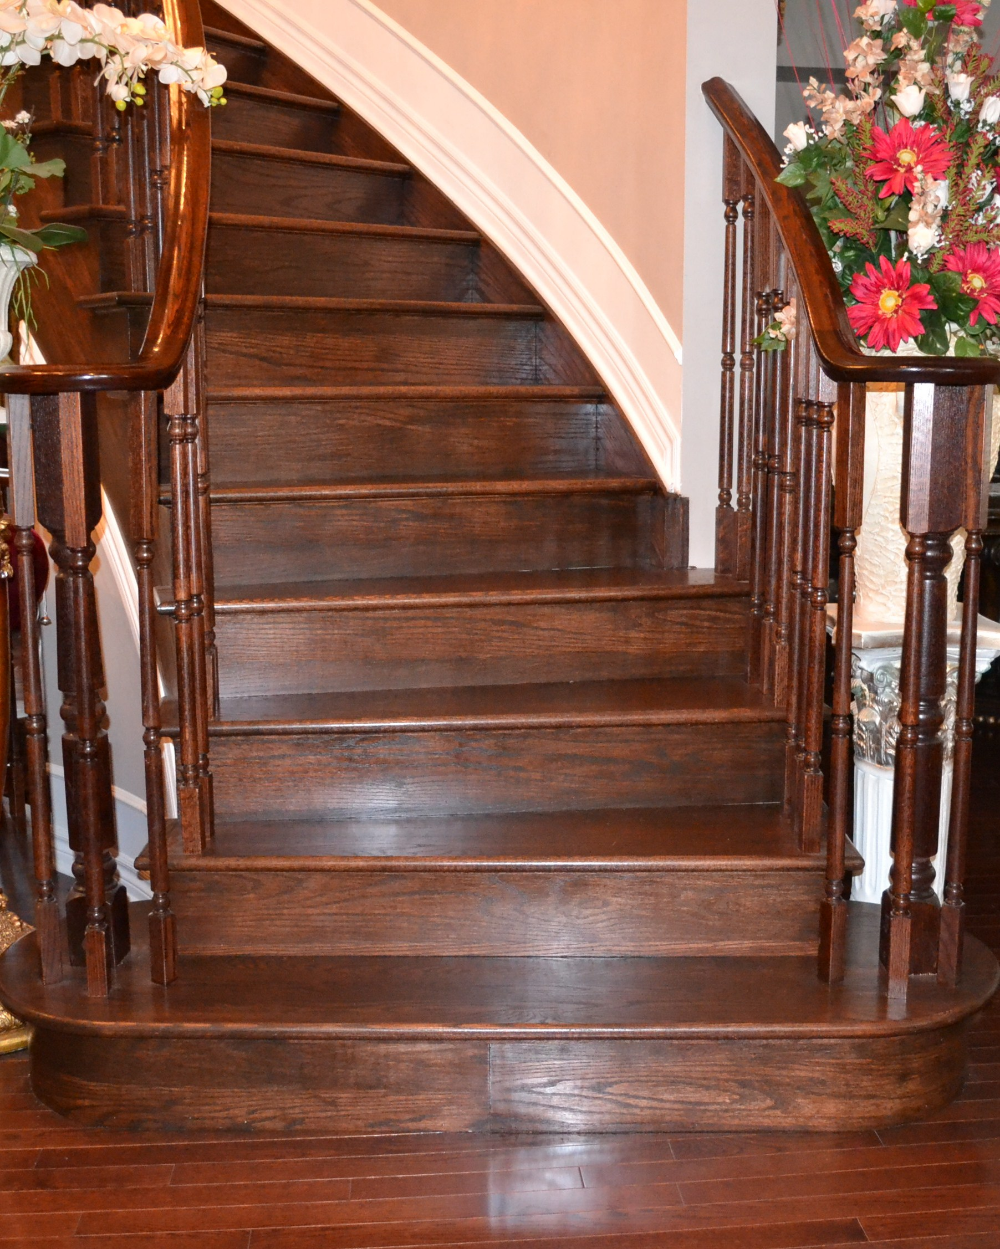 Wooden Stairs With Painted Stripes Updating Interior: Colonial Wood Stained Staircase